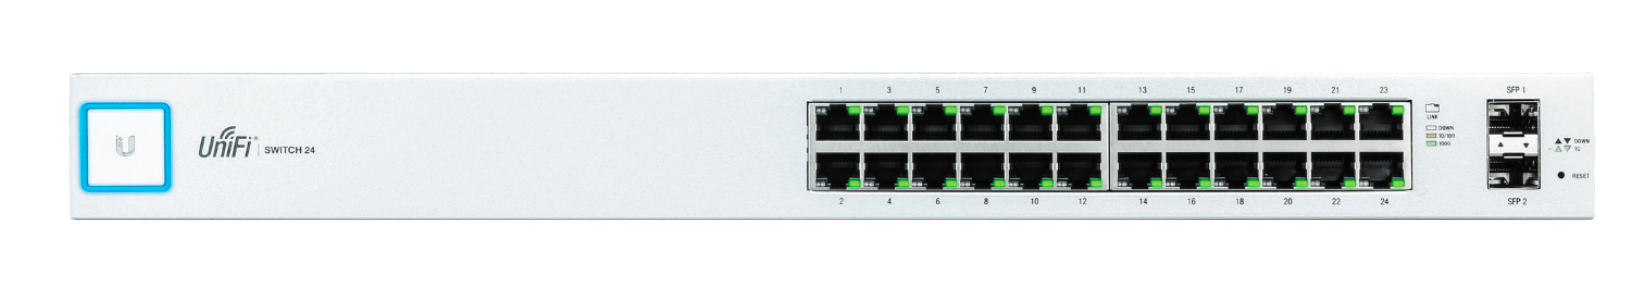 Ubiquiti Networks UniFi US-24 Managed Gigabit Ethernet (10/100/1000) 1U Silver,White network switch